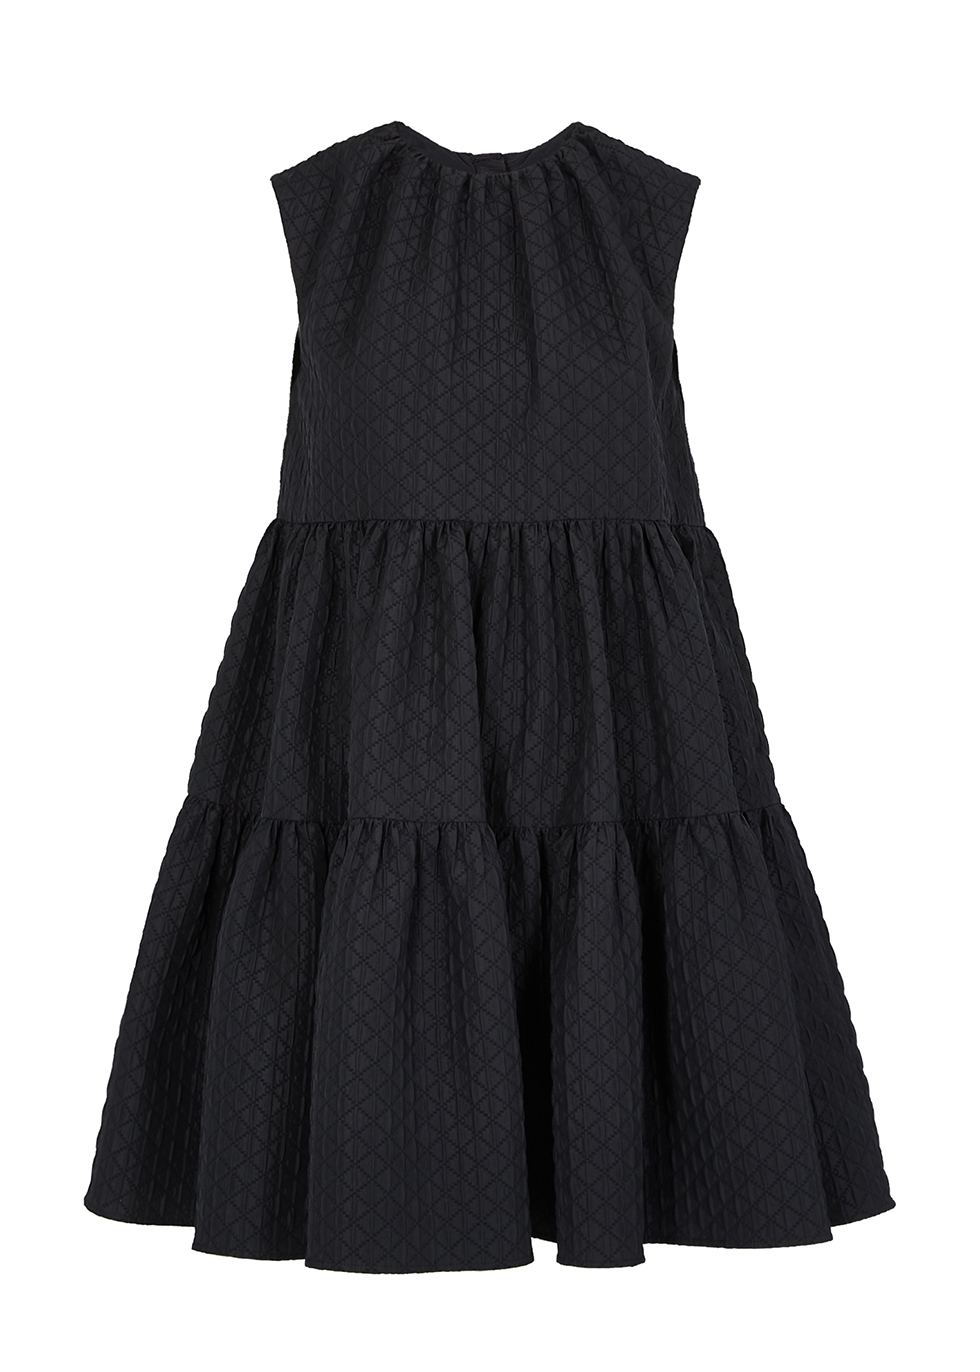 Black jacquard mini dress